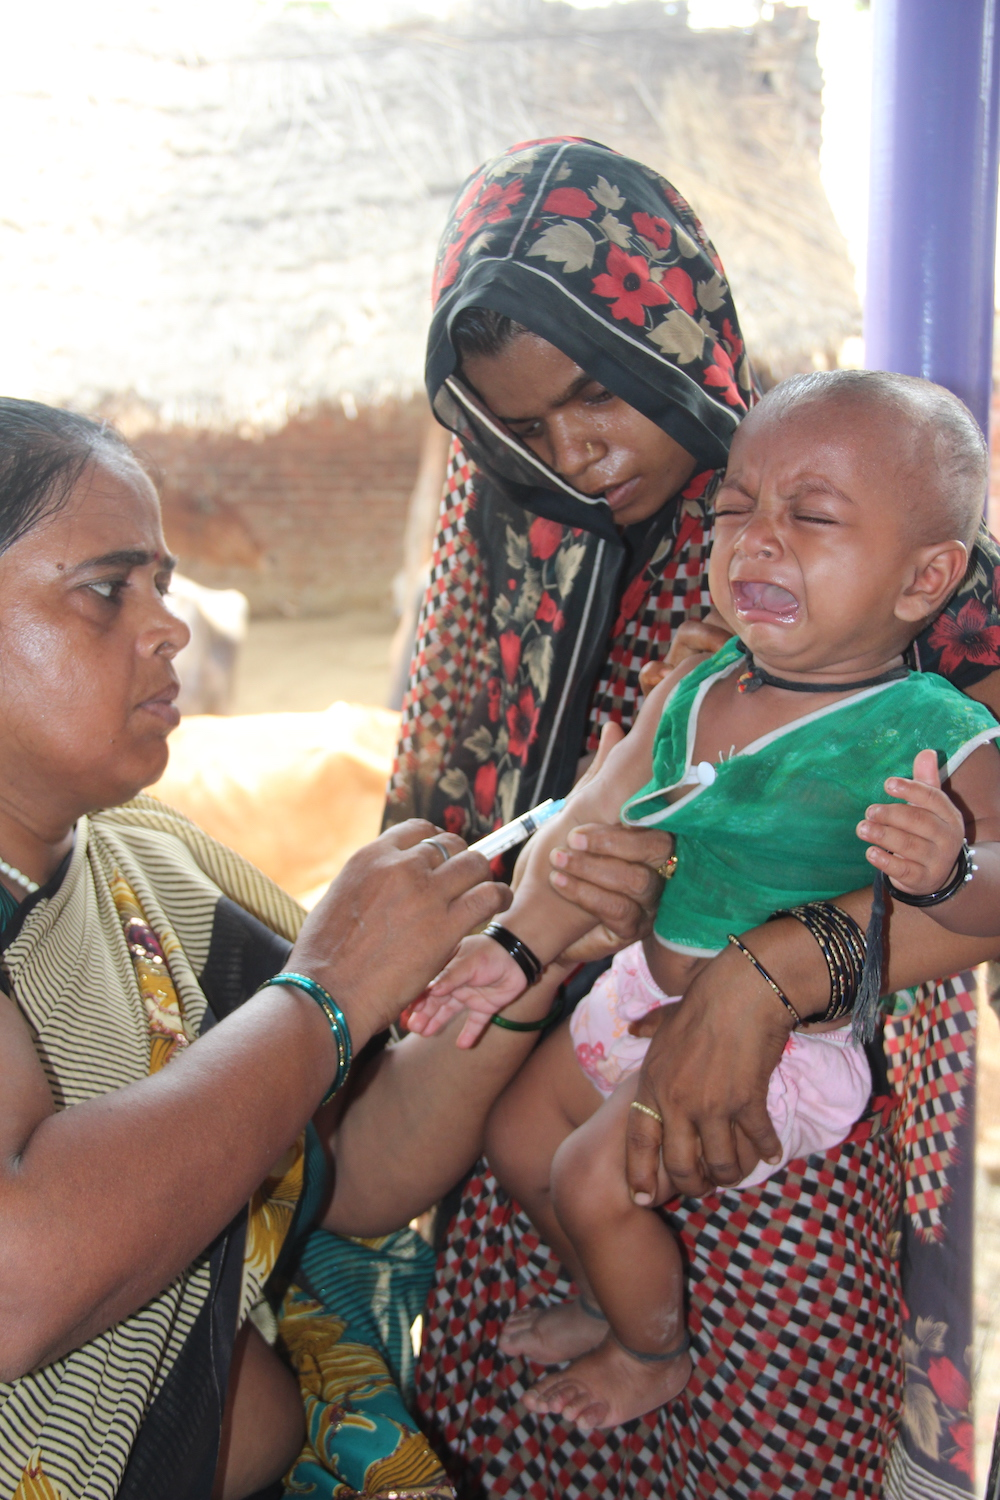 Nurse vaccinating child in India